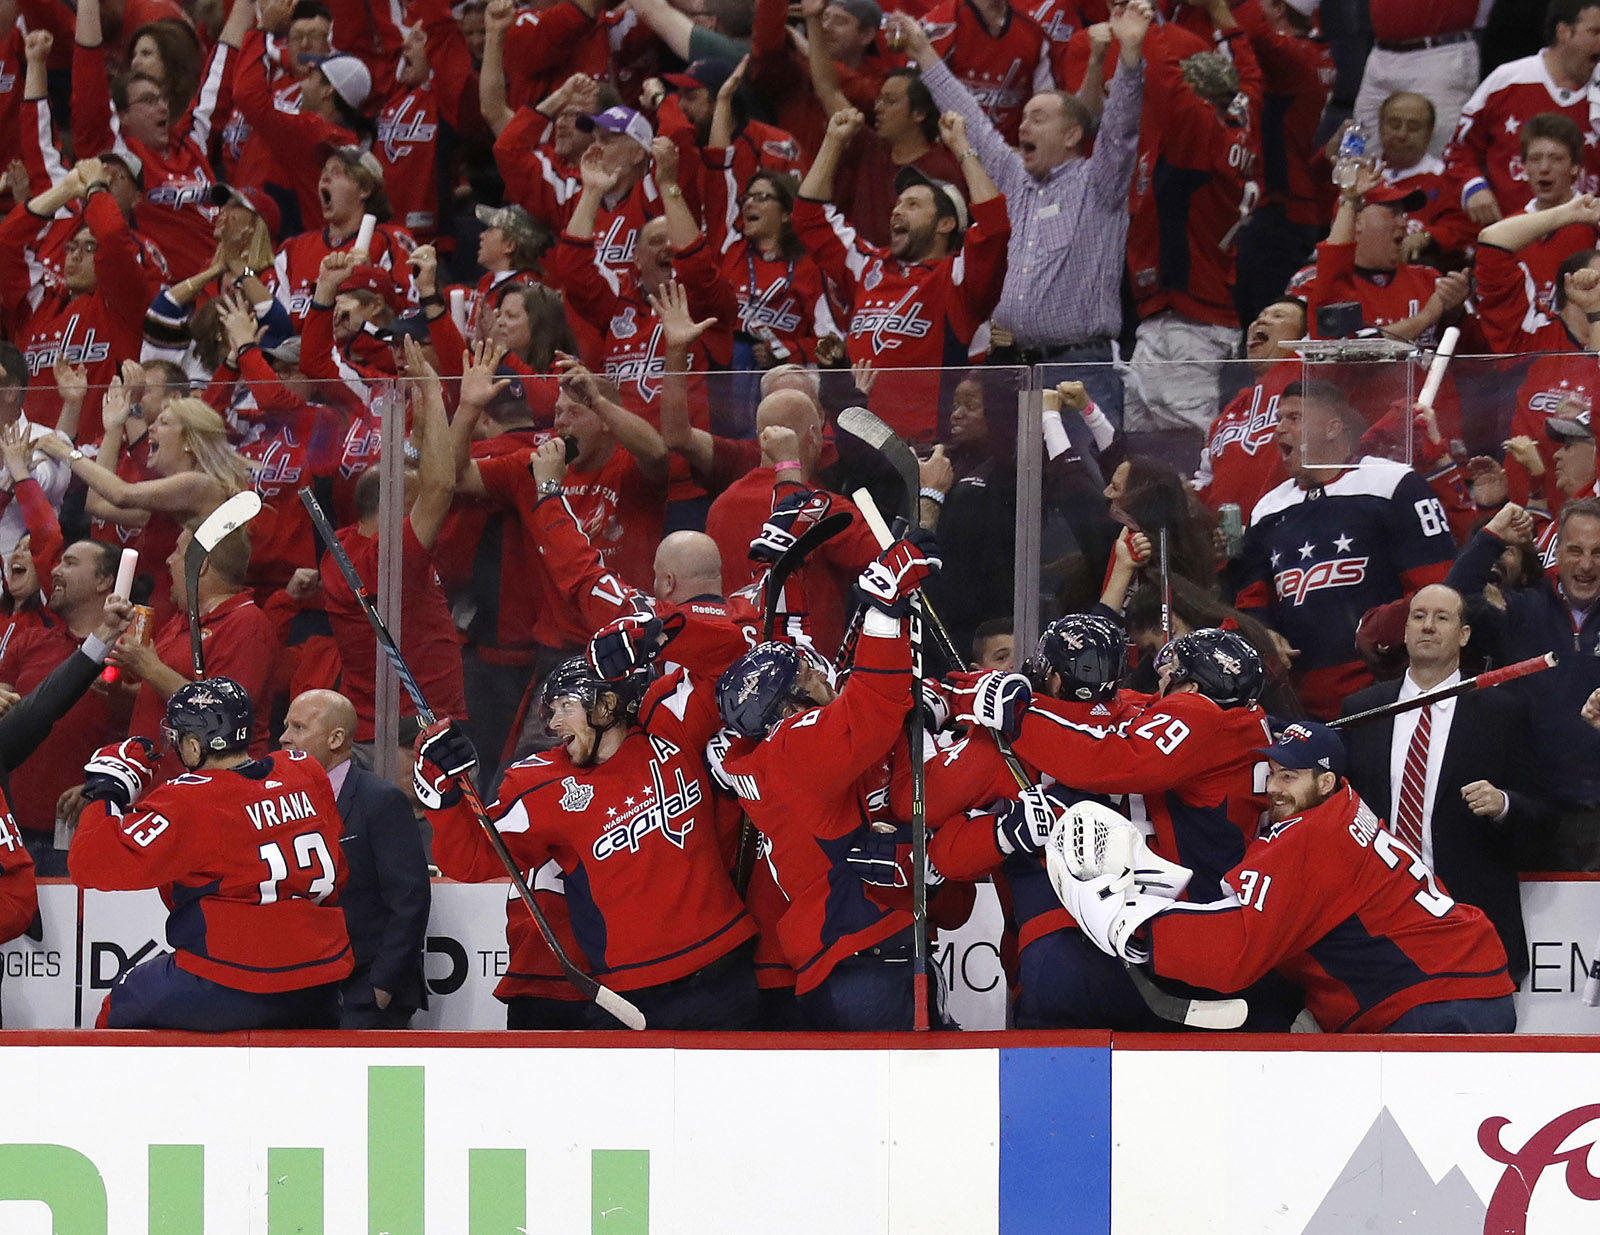 Fans and Washington Capitals players celebrate a goal by Capitals forward Devante Smith-Pelly during the third period in Game 3 of the NHL hockey Stanley Cup Final against the Vegas Golden Knights, Saturday, June 2, 2018, in Washington. (AP Photo/Alex Brandon)